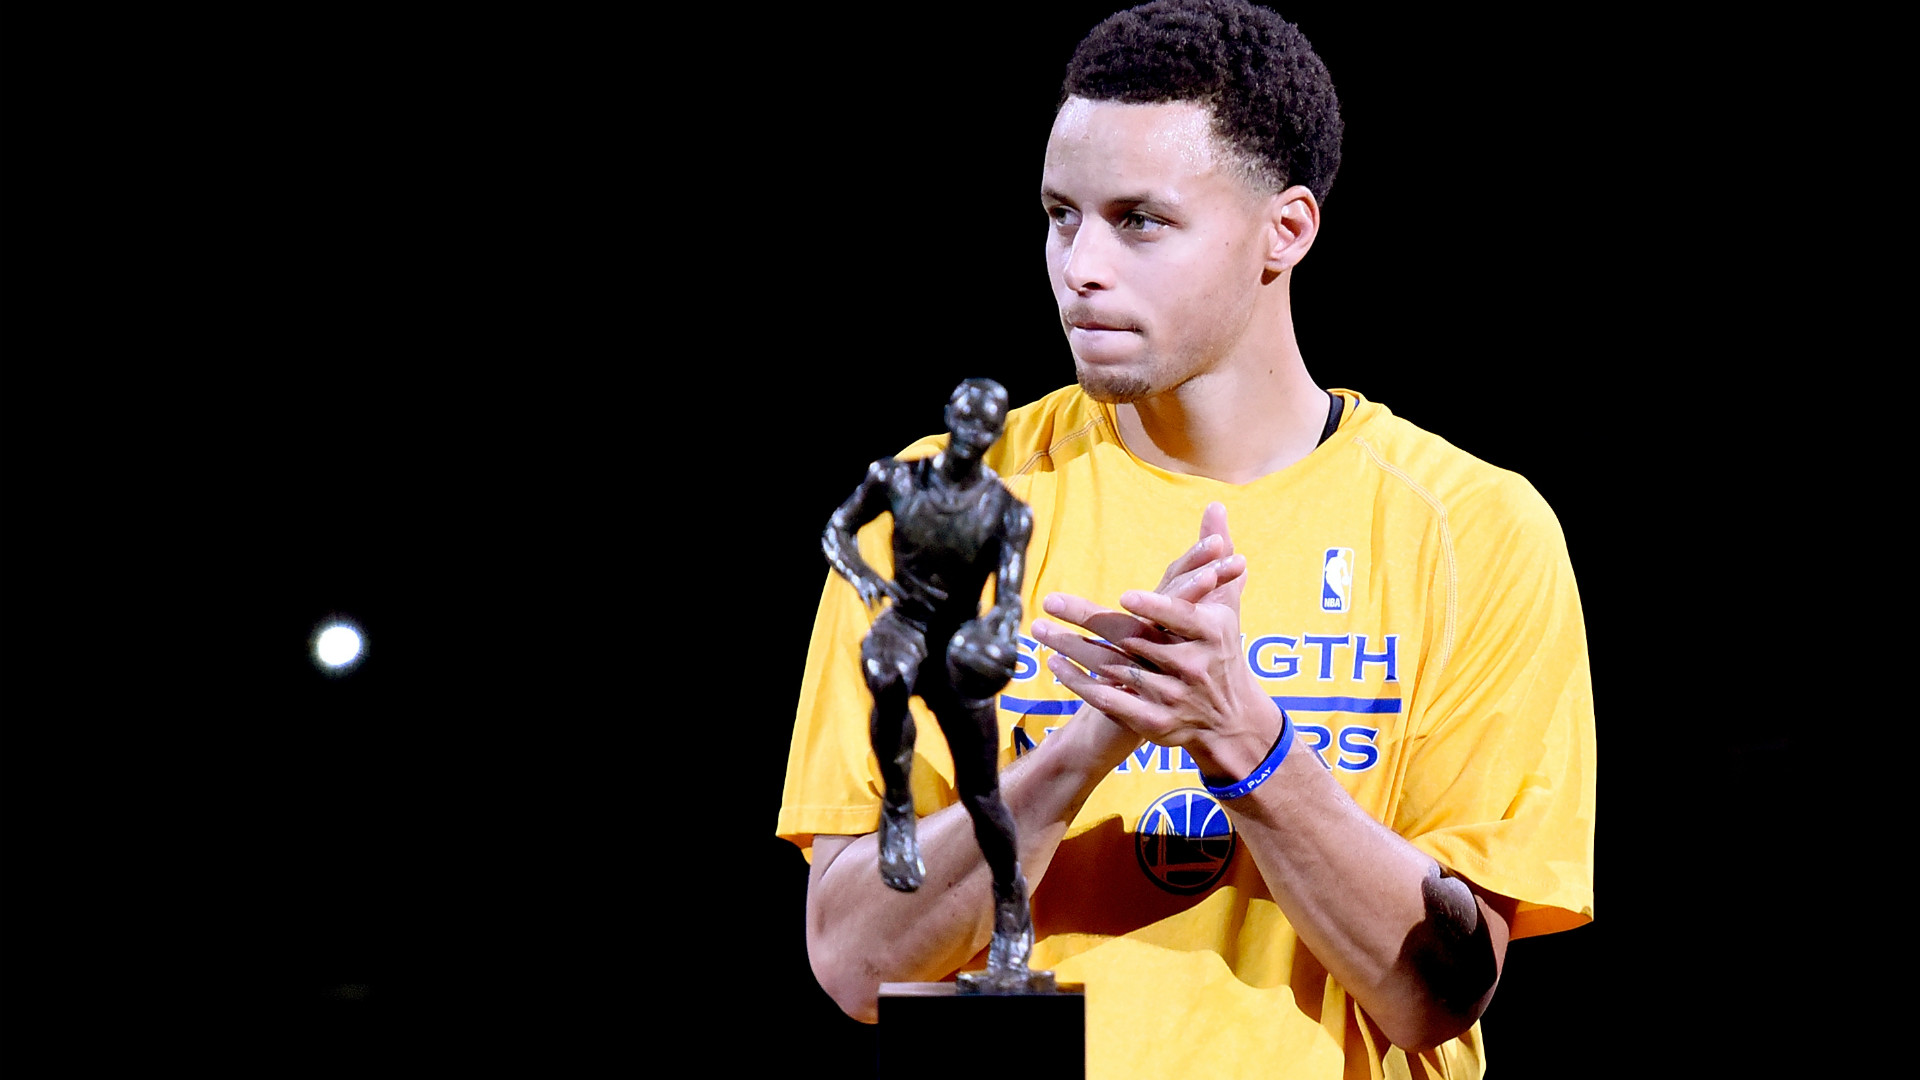 Stephen Curry Wallpaper Hd 2018 78 Images